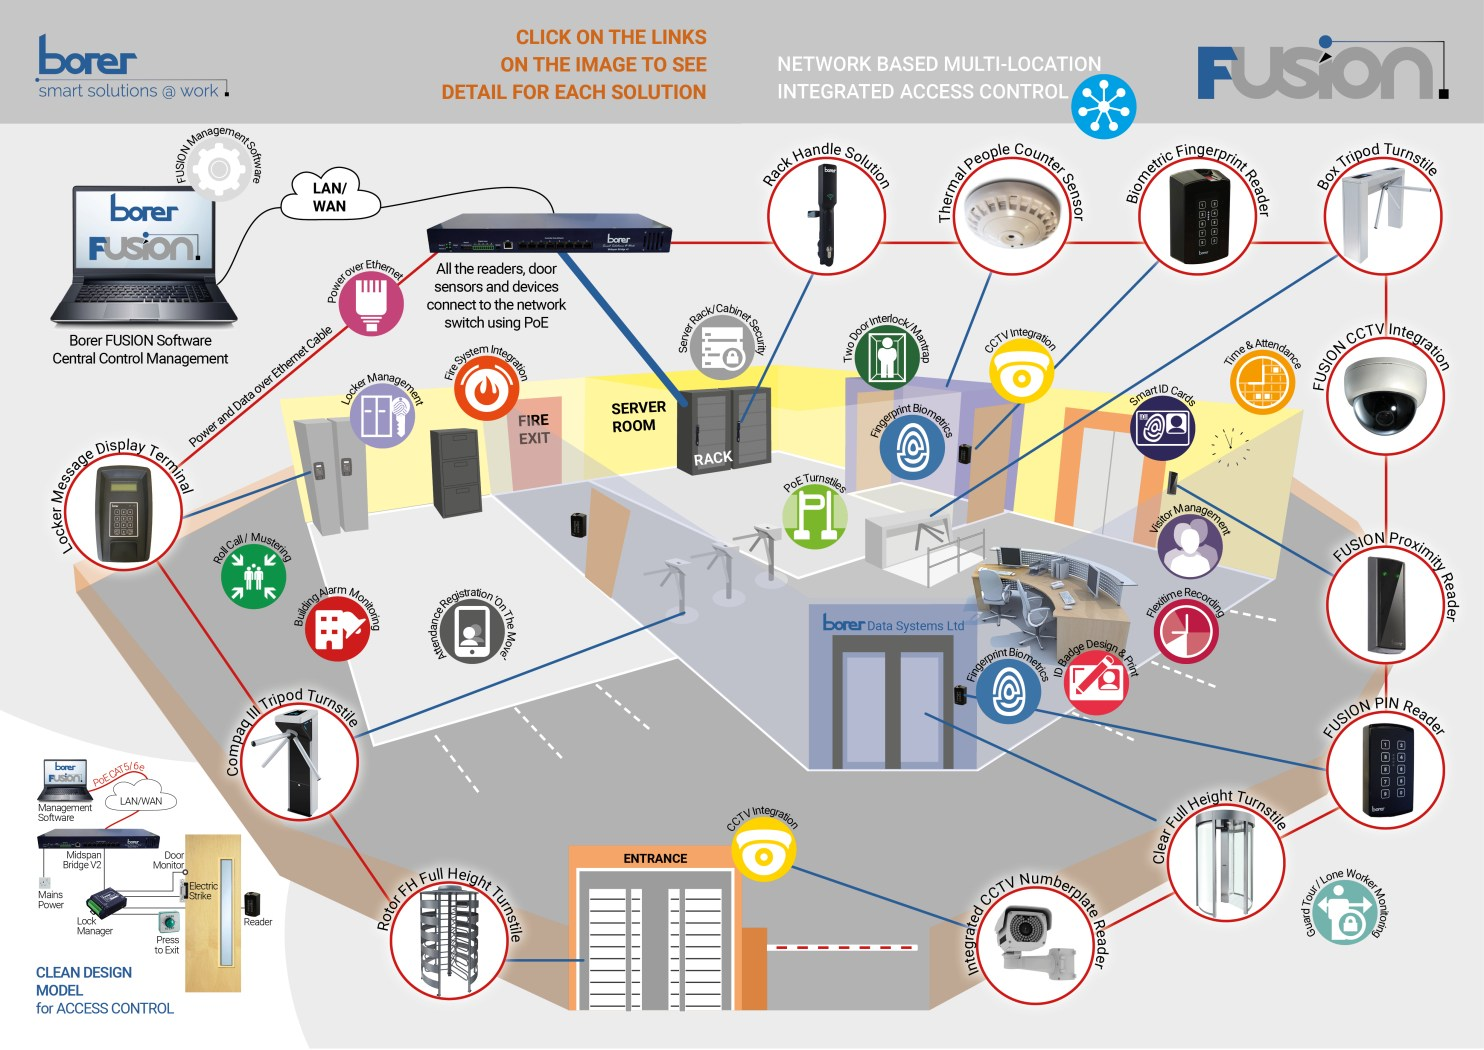 Borer Fusion Access Control Management